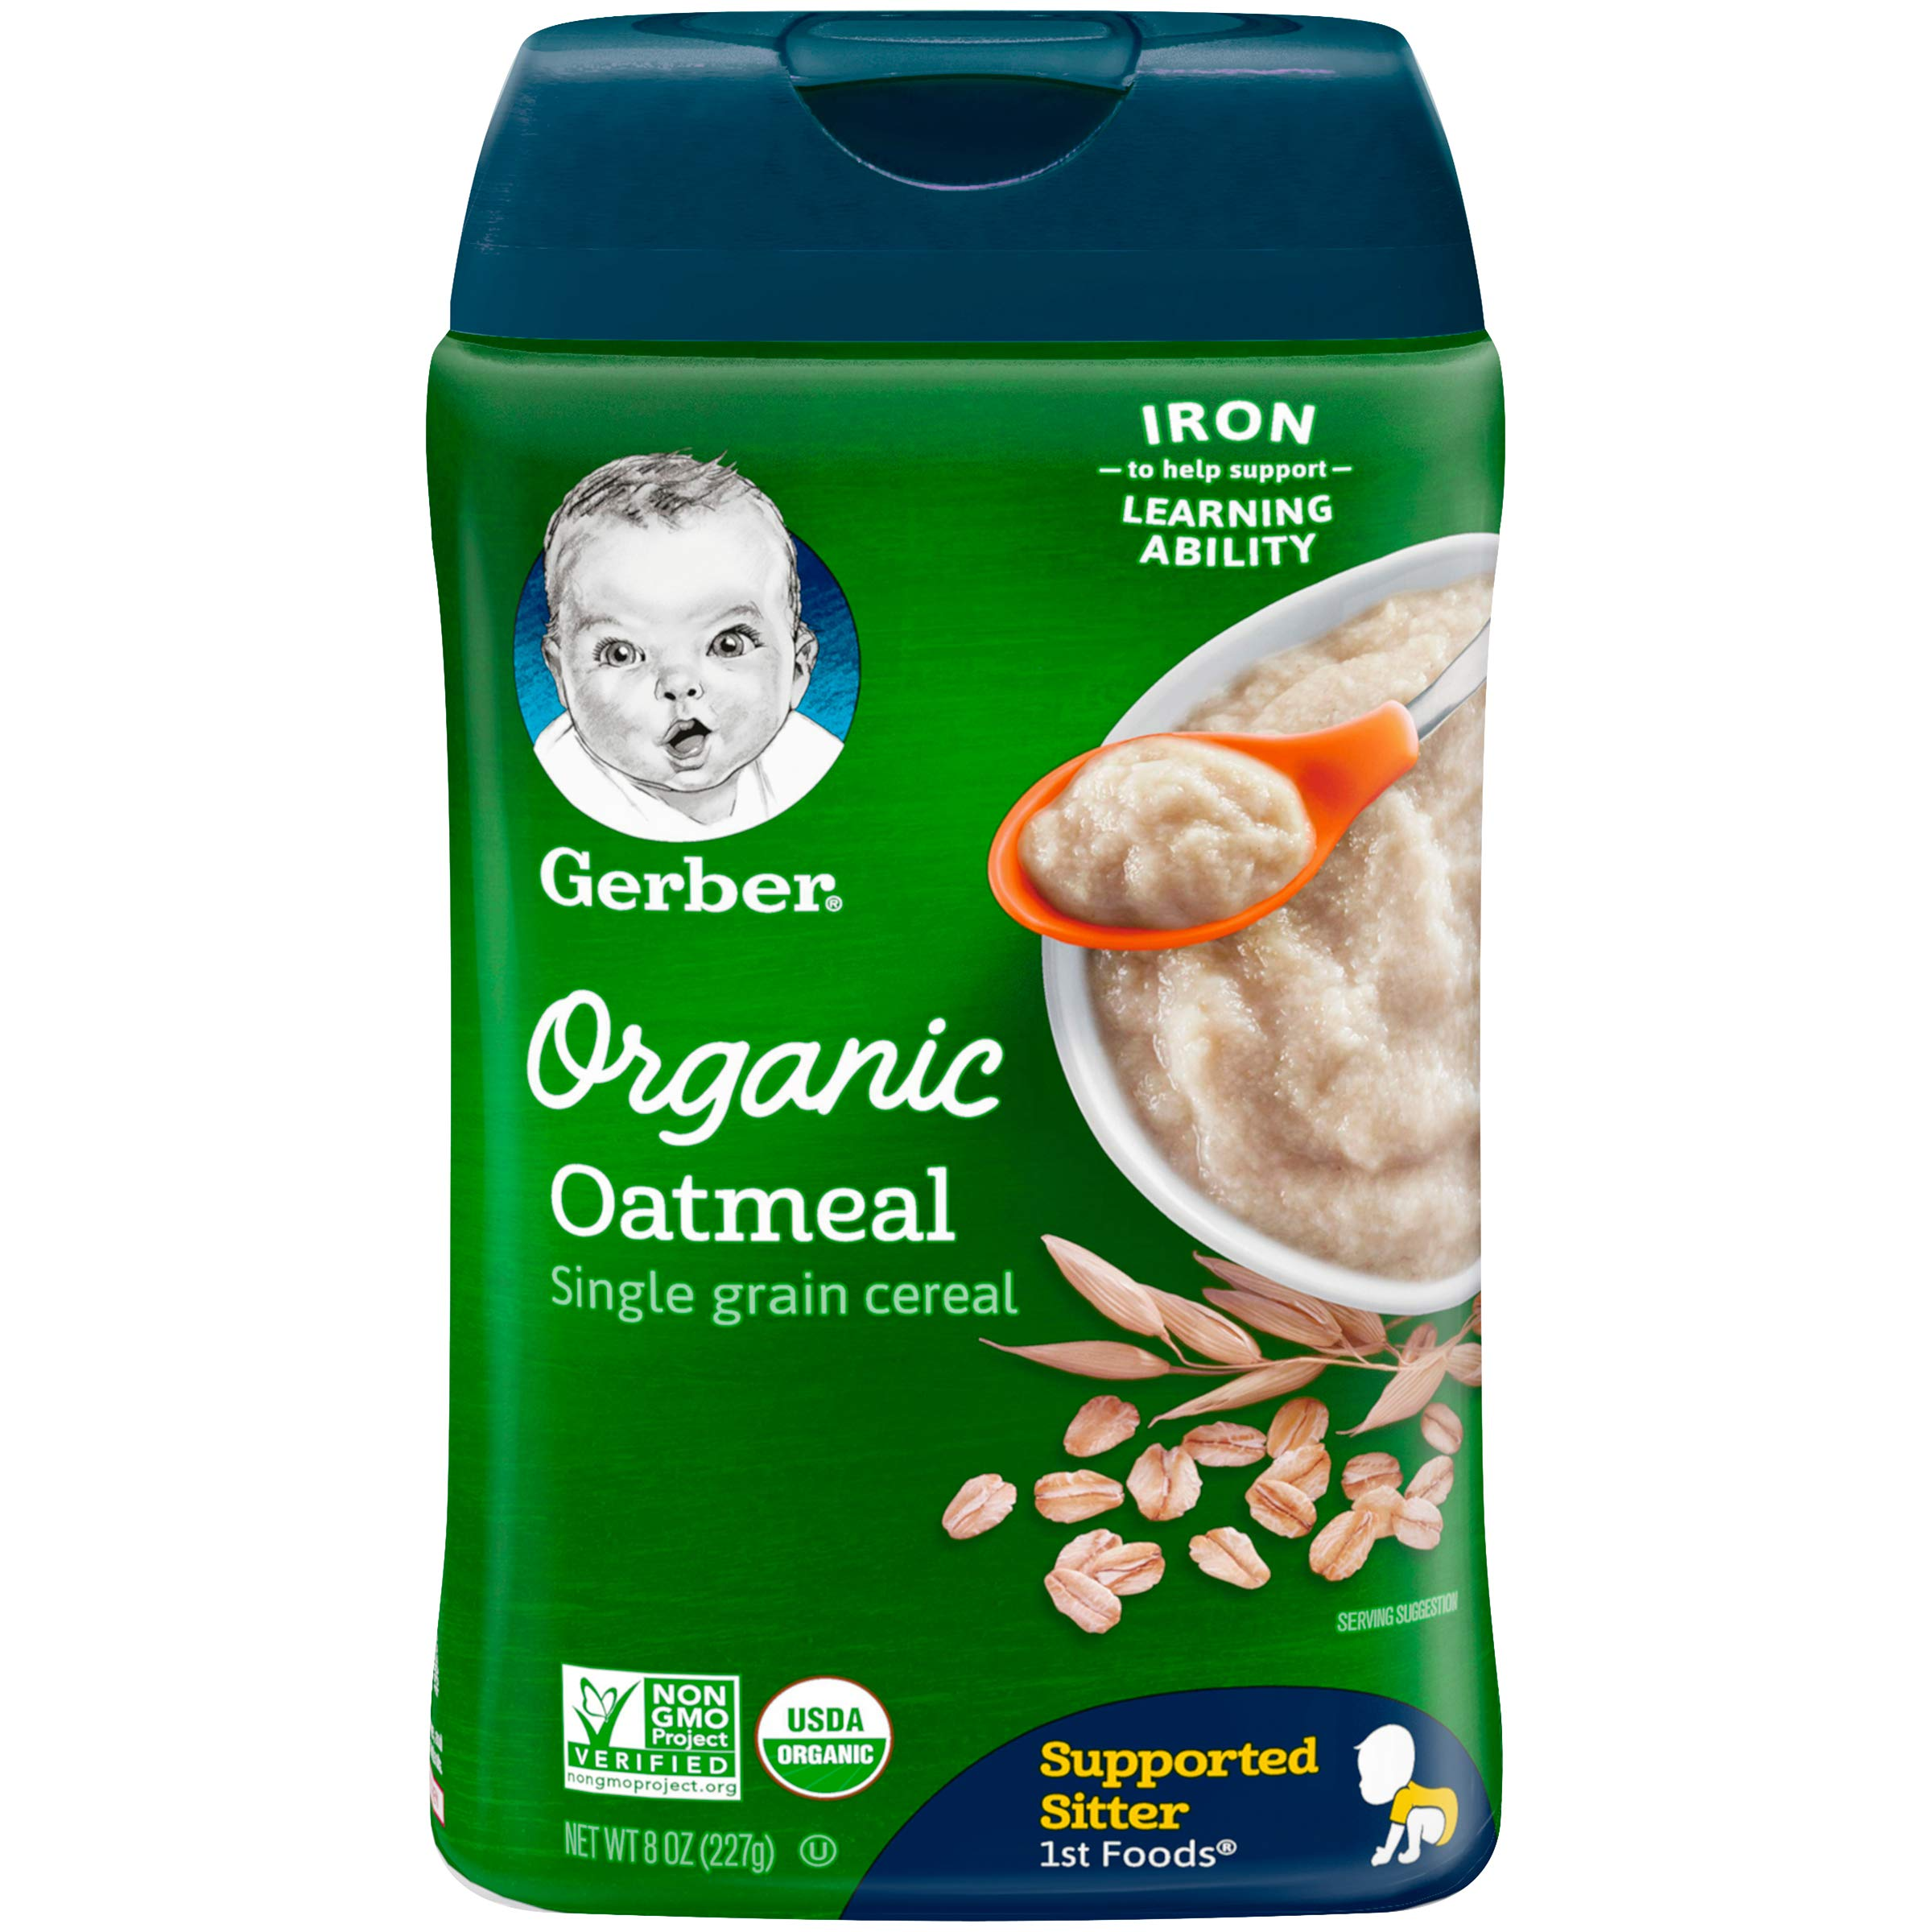 Gerber Baby Cereal, Organic Oatmeal, 8 Ounce